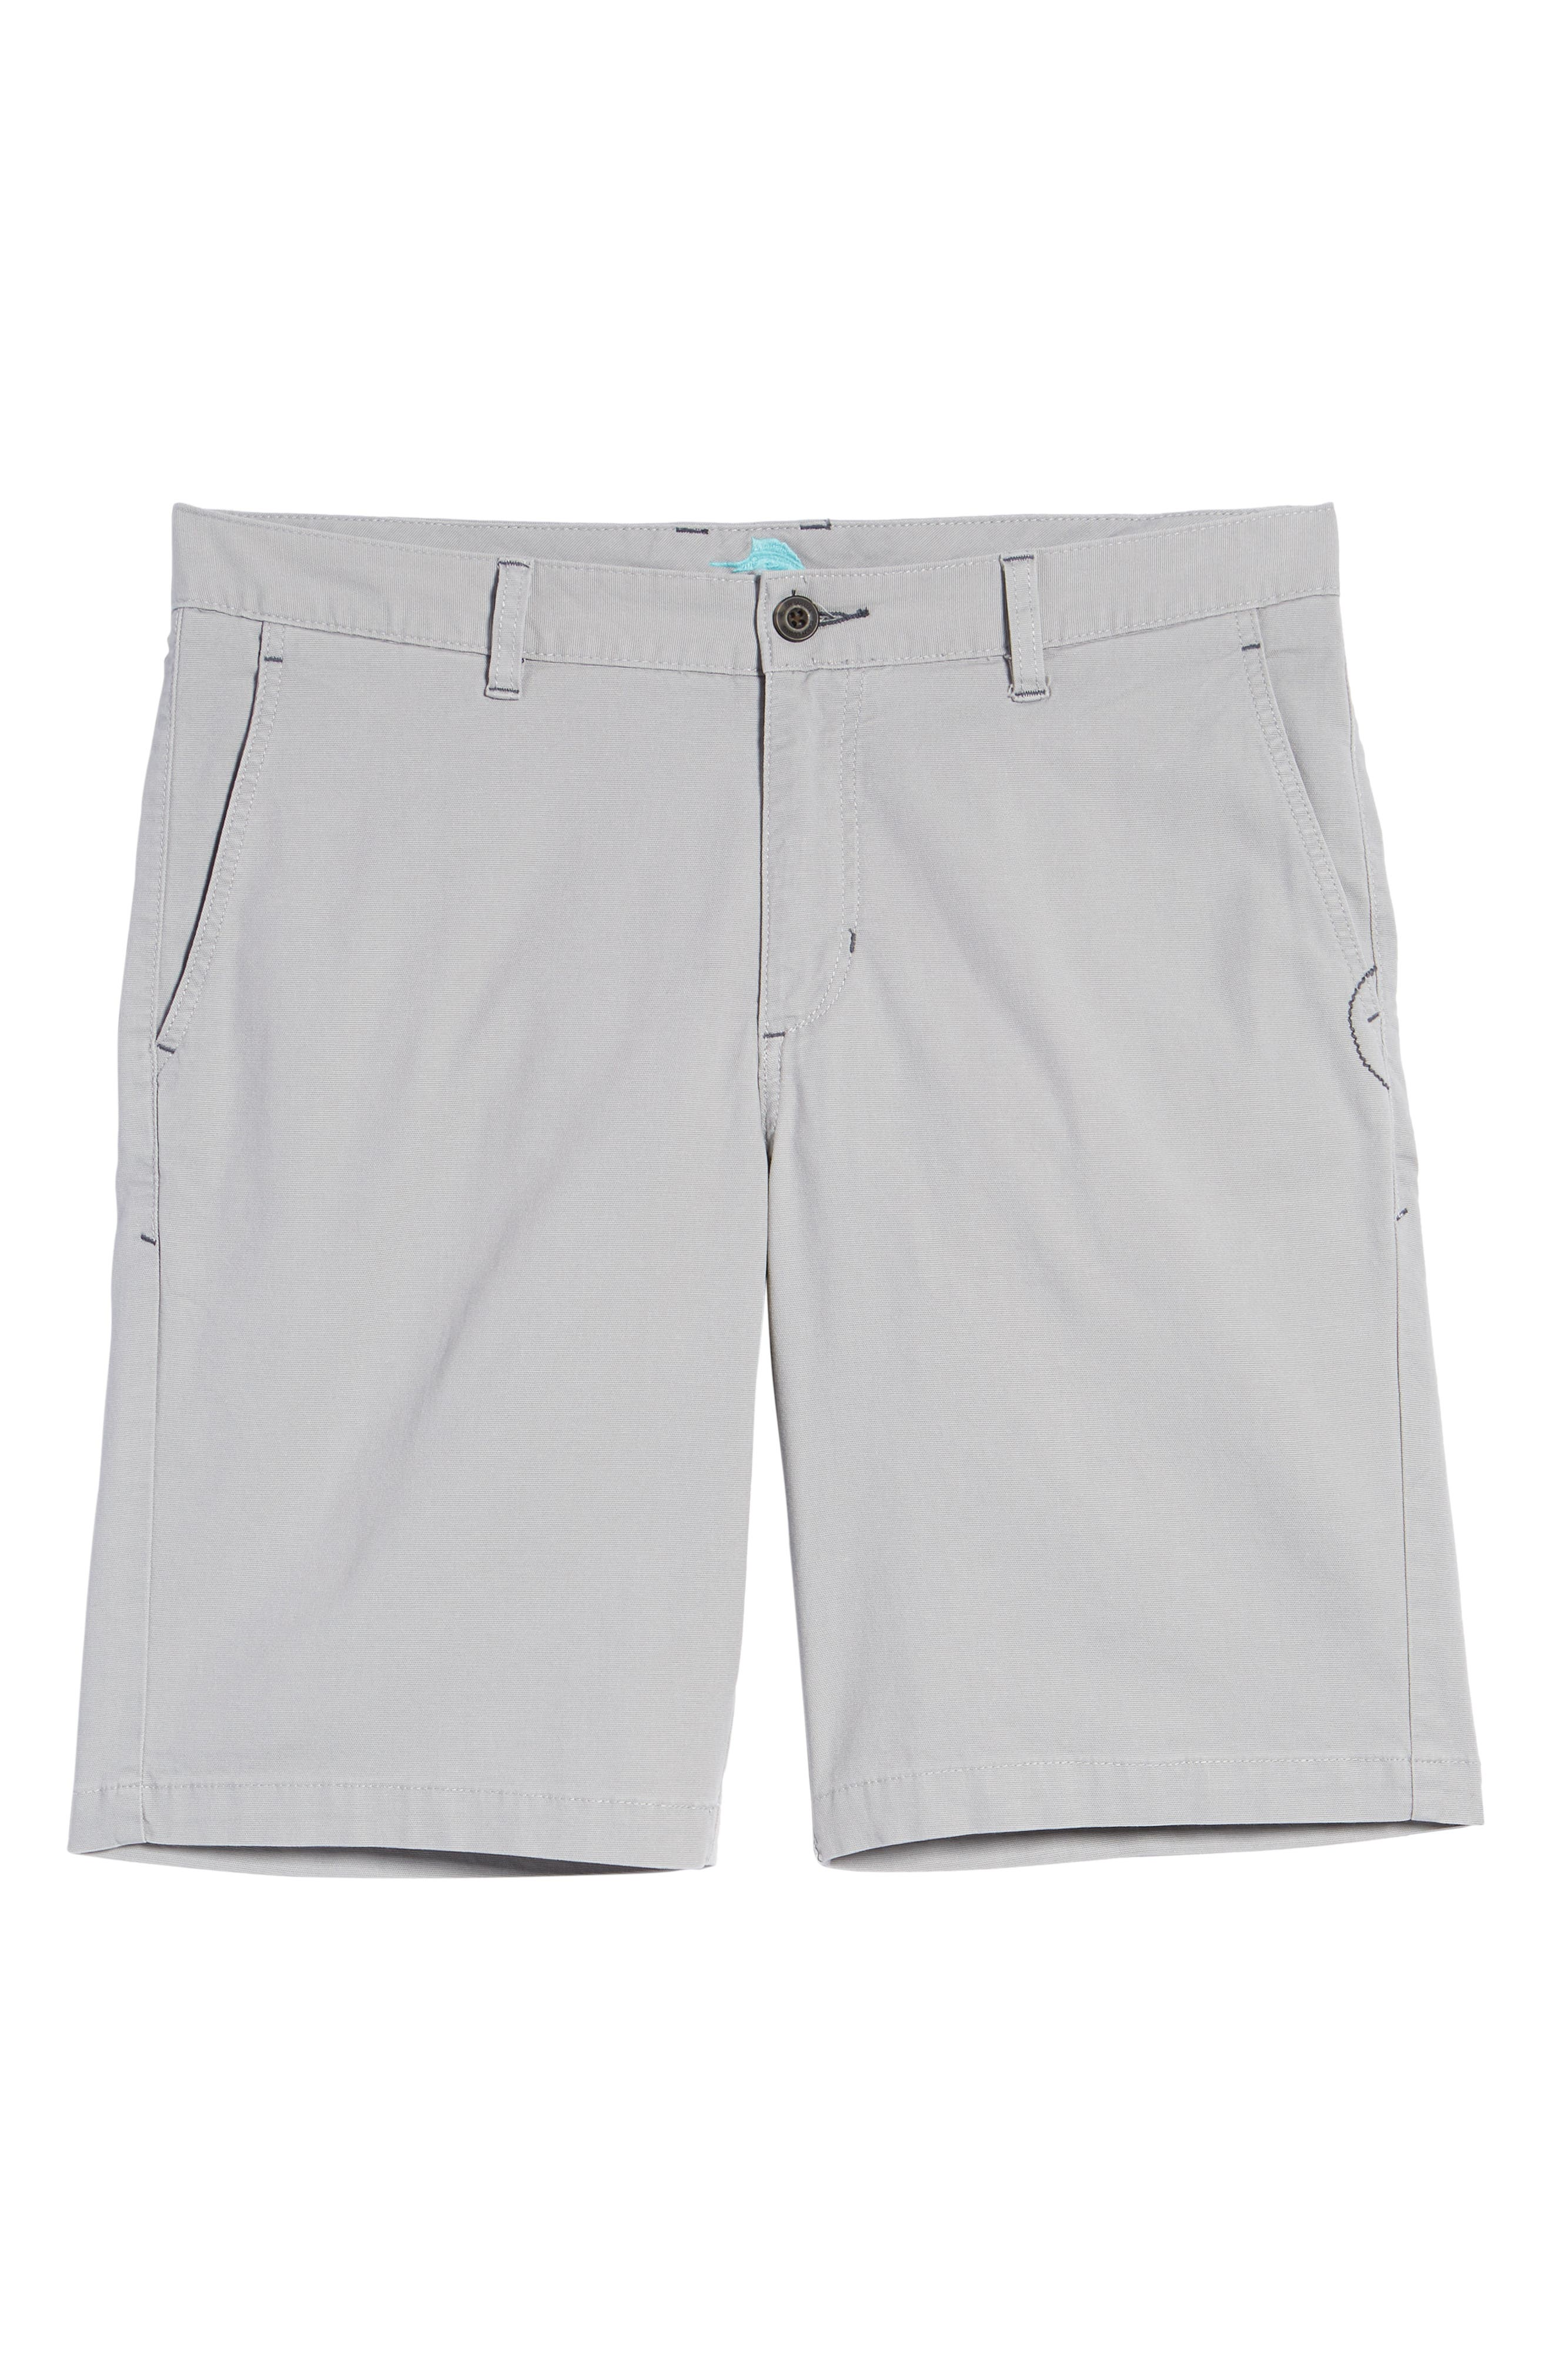 Key Isles Shorts,                             Alternate thumbnail 6, color,                             ARGENT